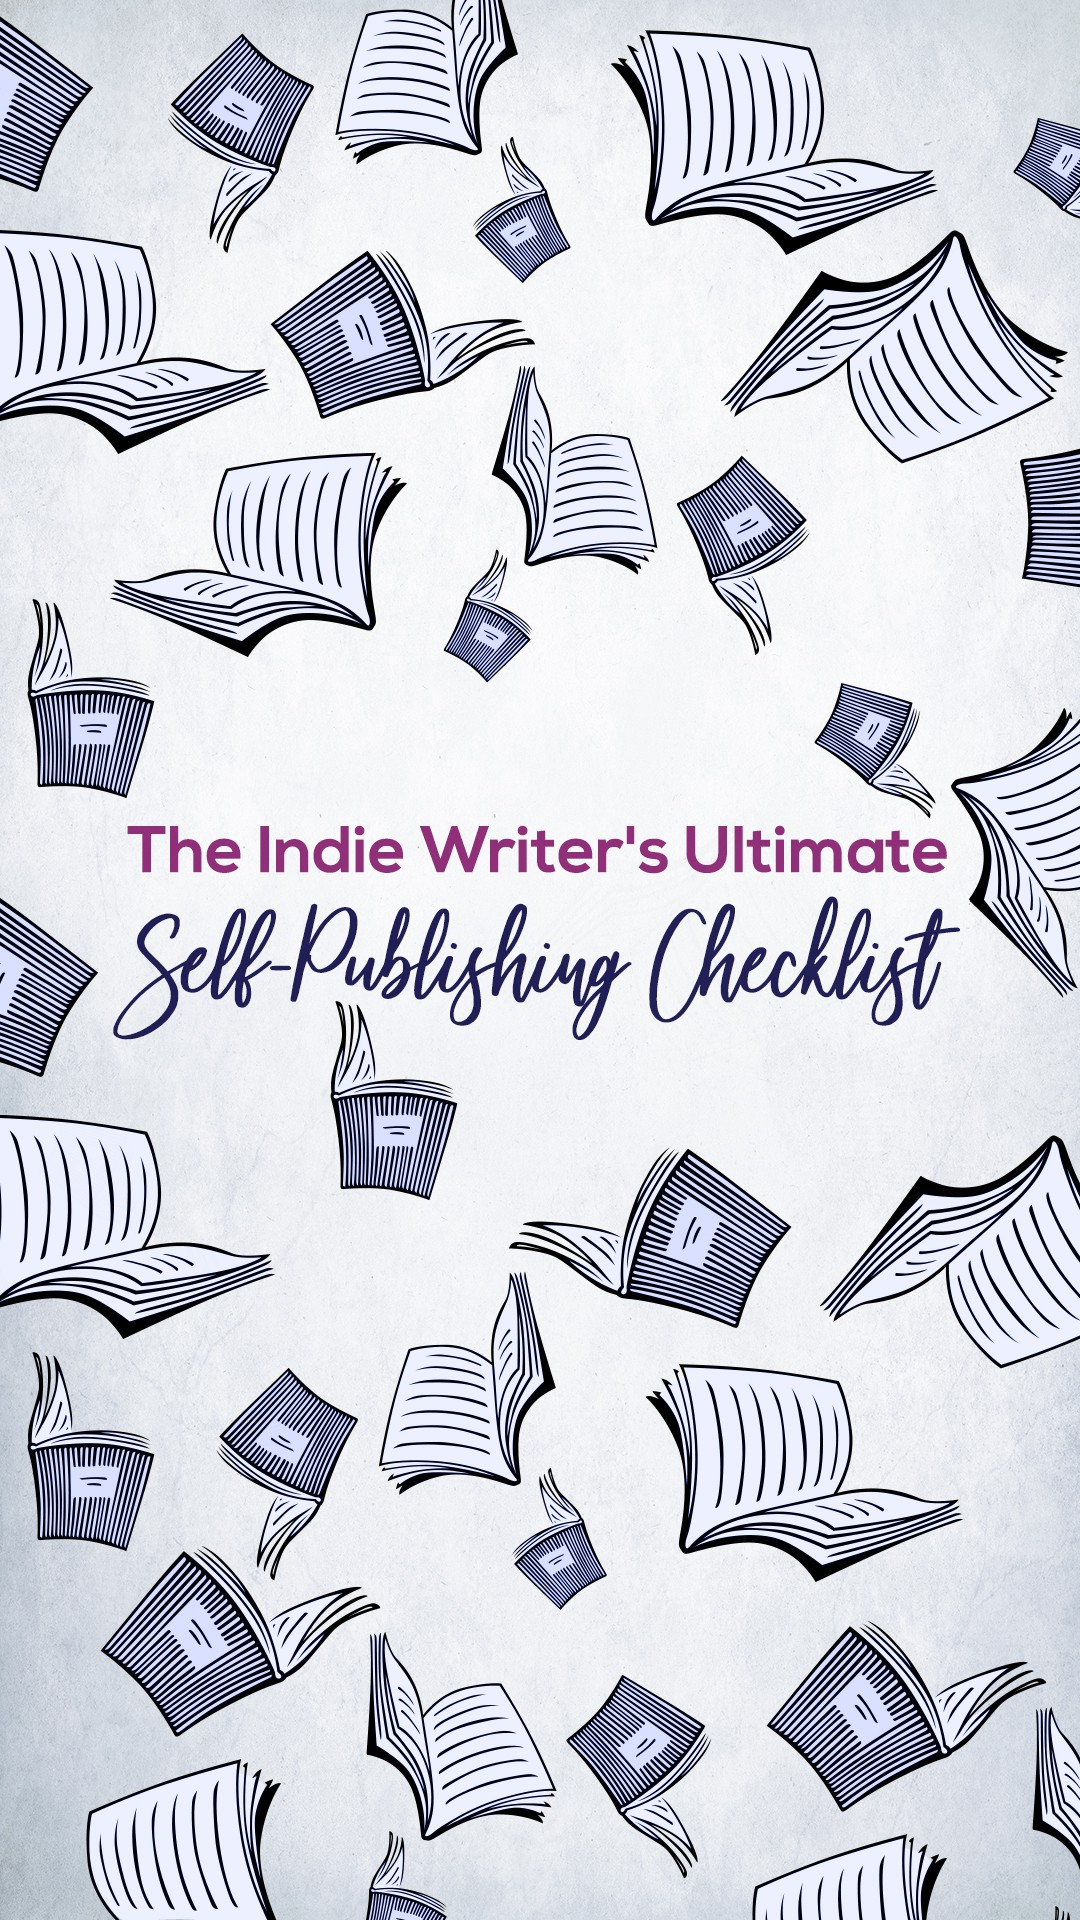 The Indie Writer's Ultimate Self-Publishing Checklist - banners